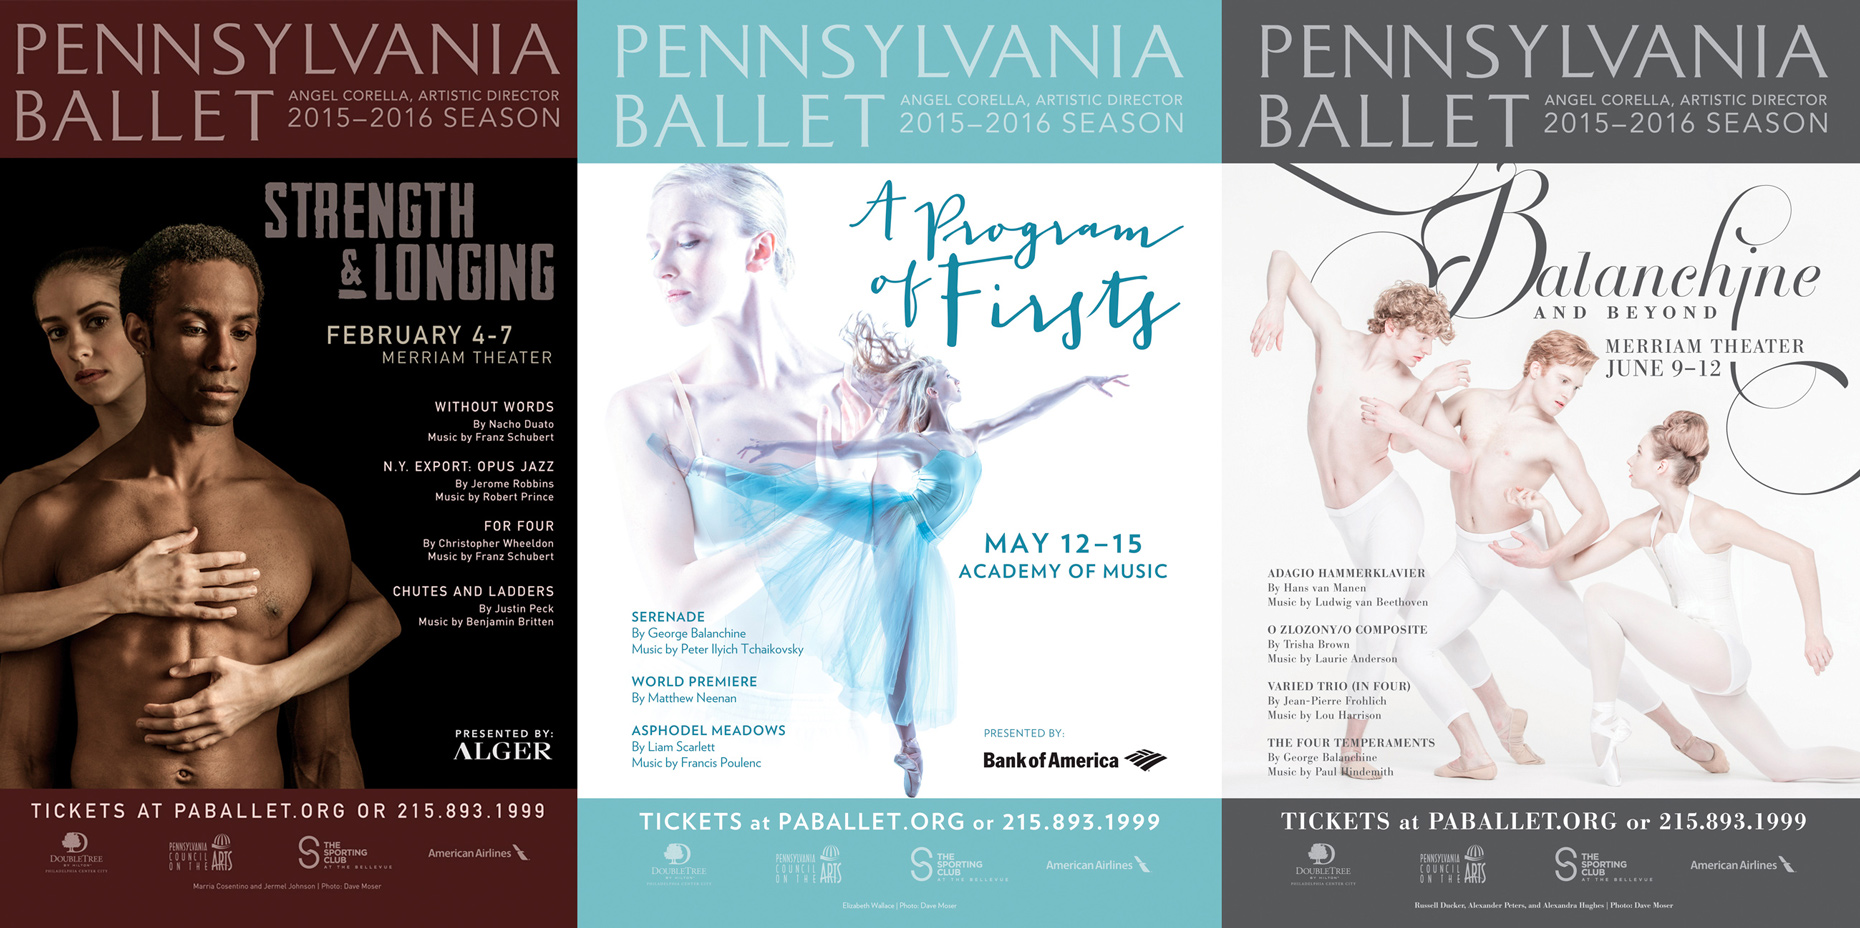 commercial-pennsylvania-ballet-advertising